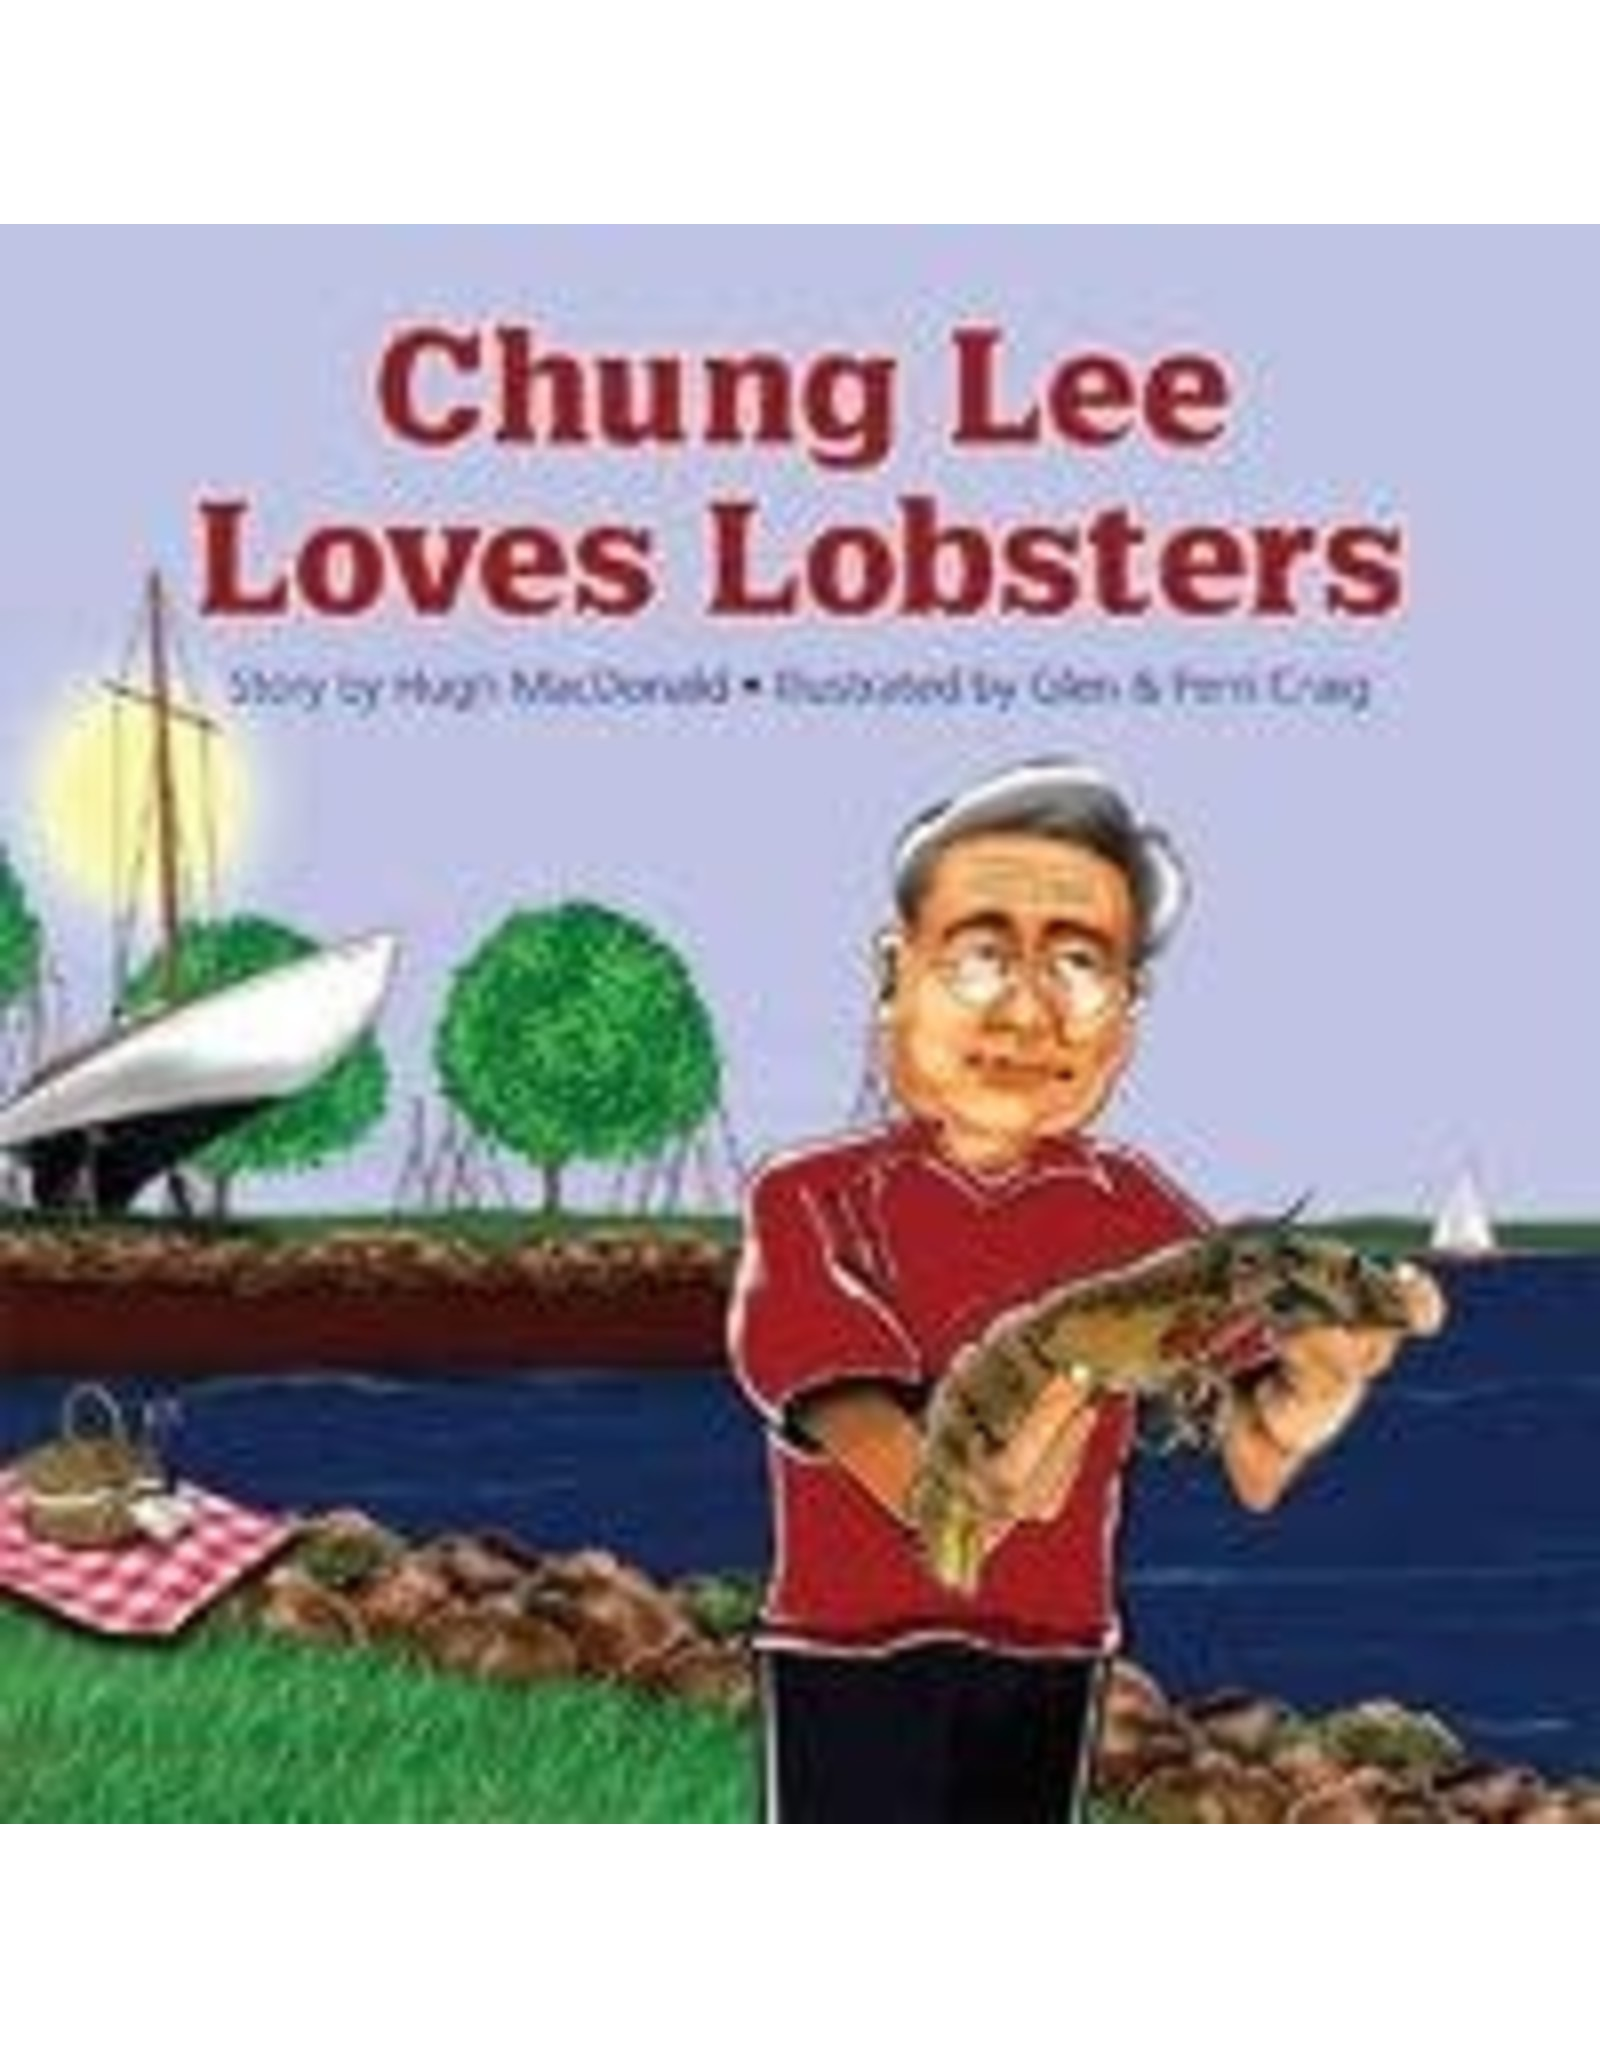 Acorn Press Chung Lee Loves Lobsters by Hugh MacDonald